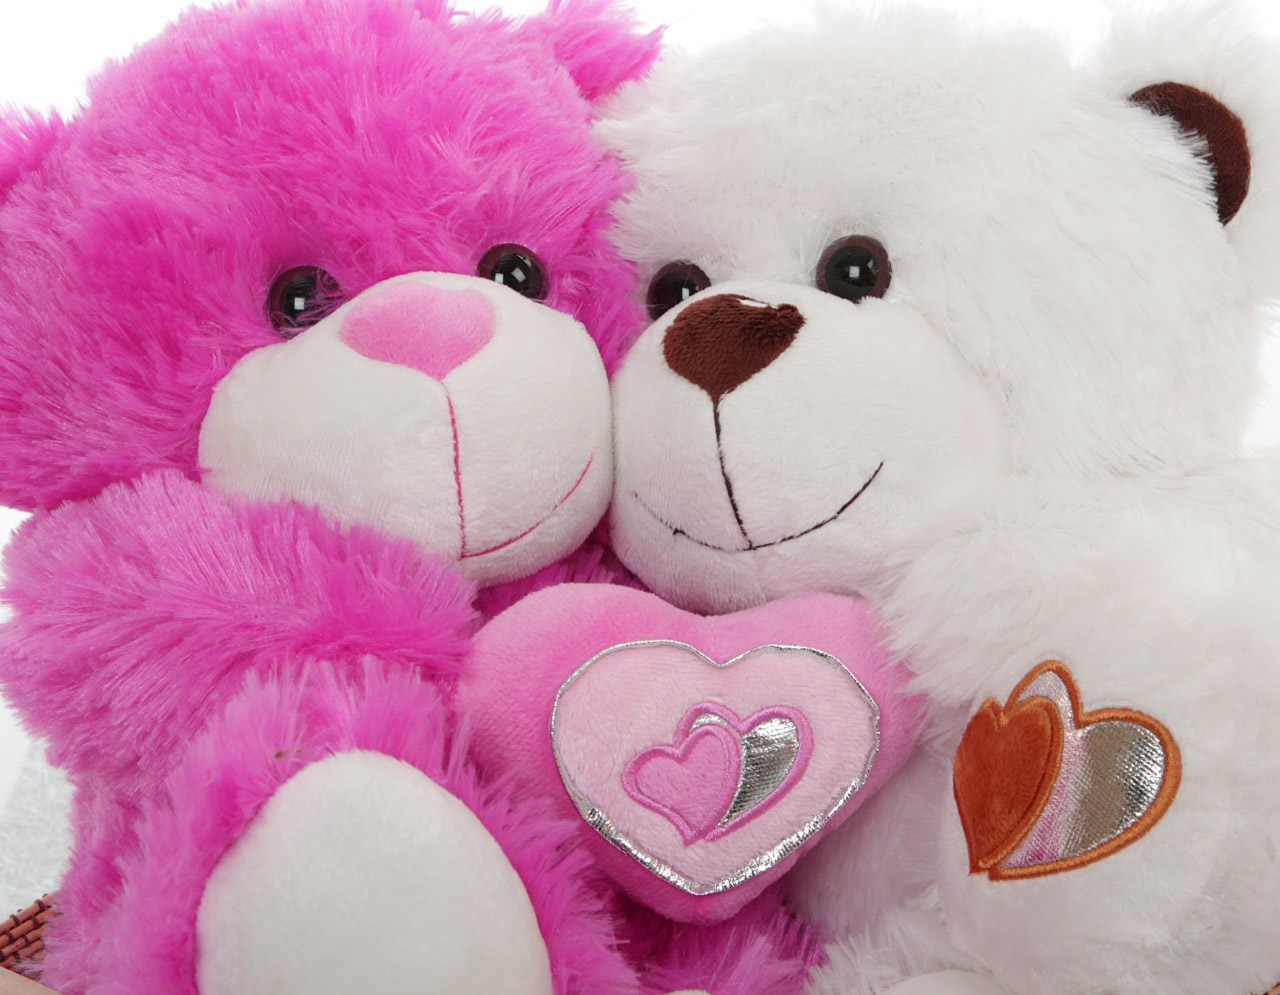 Happy Teddy Day Greetings